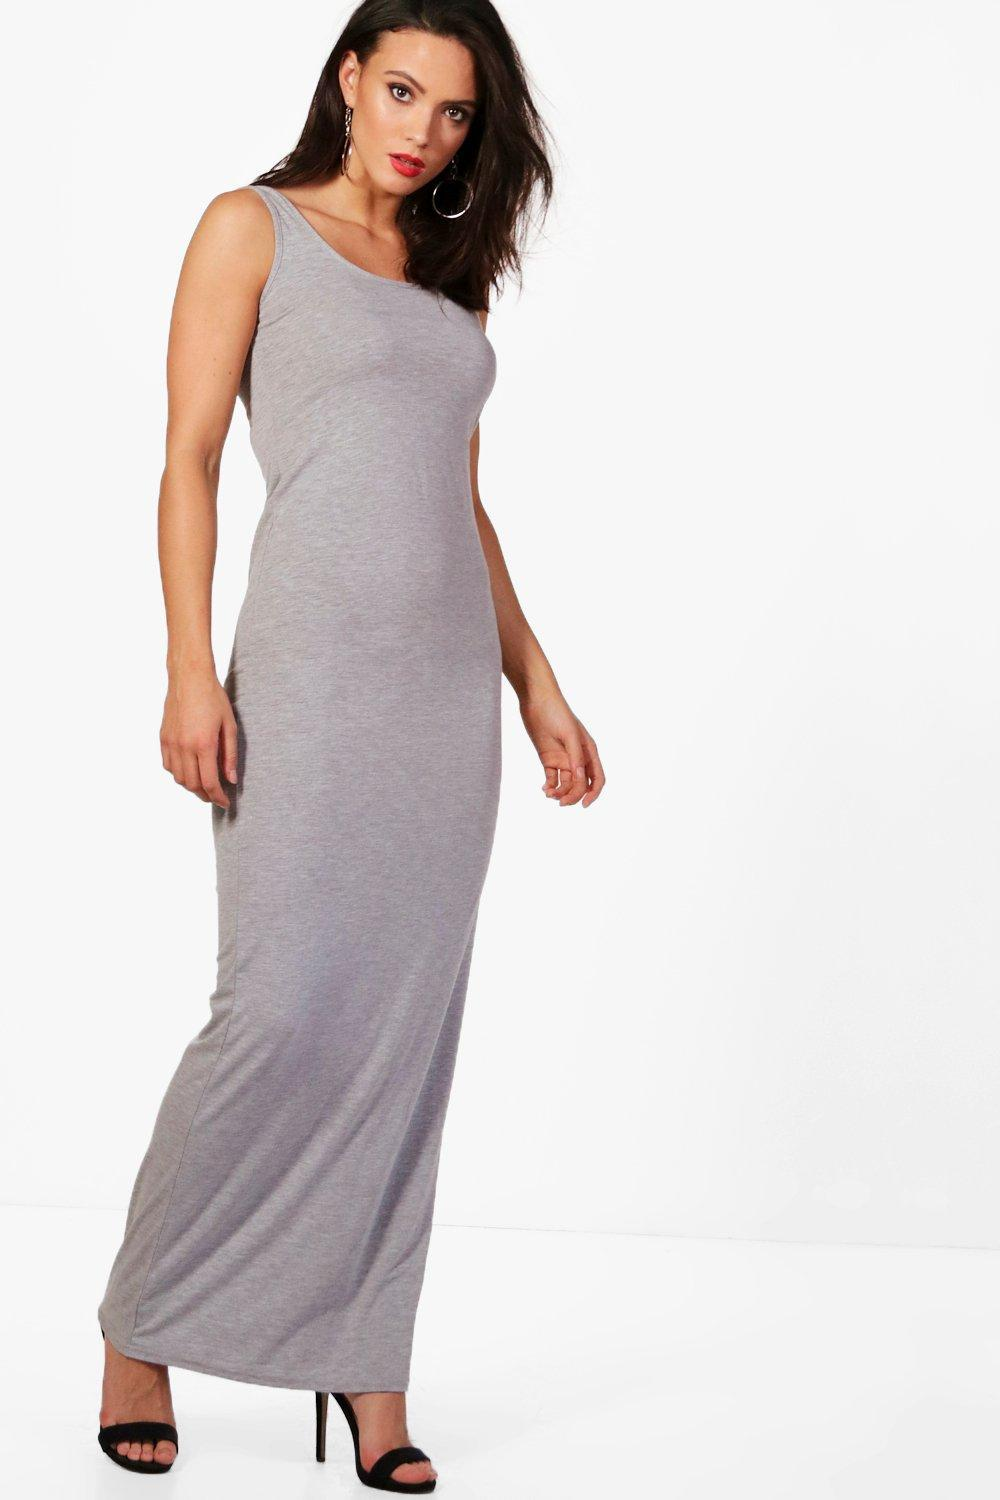 Boohoo Tall Basic Maxi Dress Outlet Manchester Fashion Style Cheap Online VqXUWIYOY